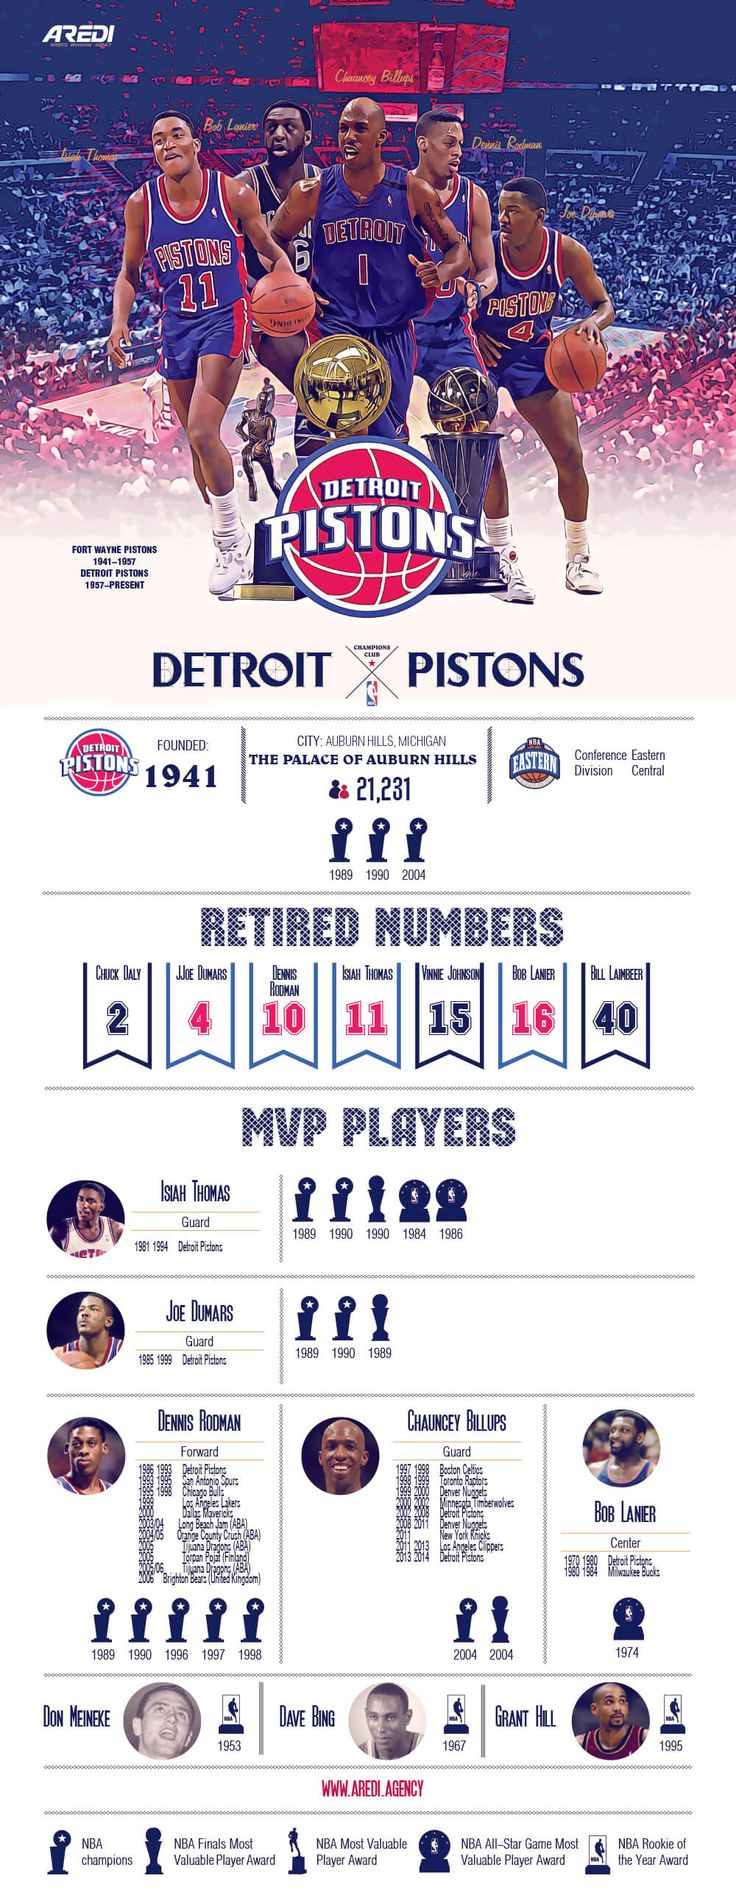 Detroit Pistons, Pistons, infographic, art, sport, create, design, basketball, club, champion, branding, NBA, MVP legends, histoty, All Star game, Isiah Thomas, Joe Dumars, Dennis Rodman, Chauncey Billups, Bob Lanier, Don Meineke, Dave Bing, Grant Hill, #sportaredi